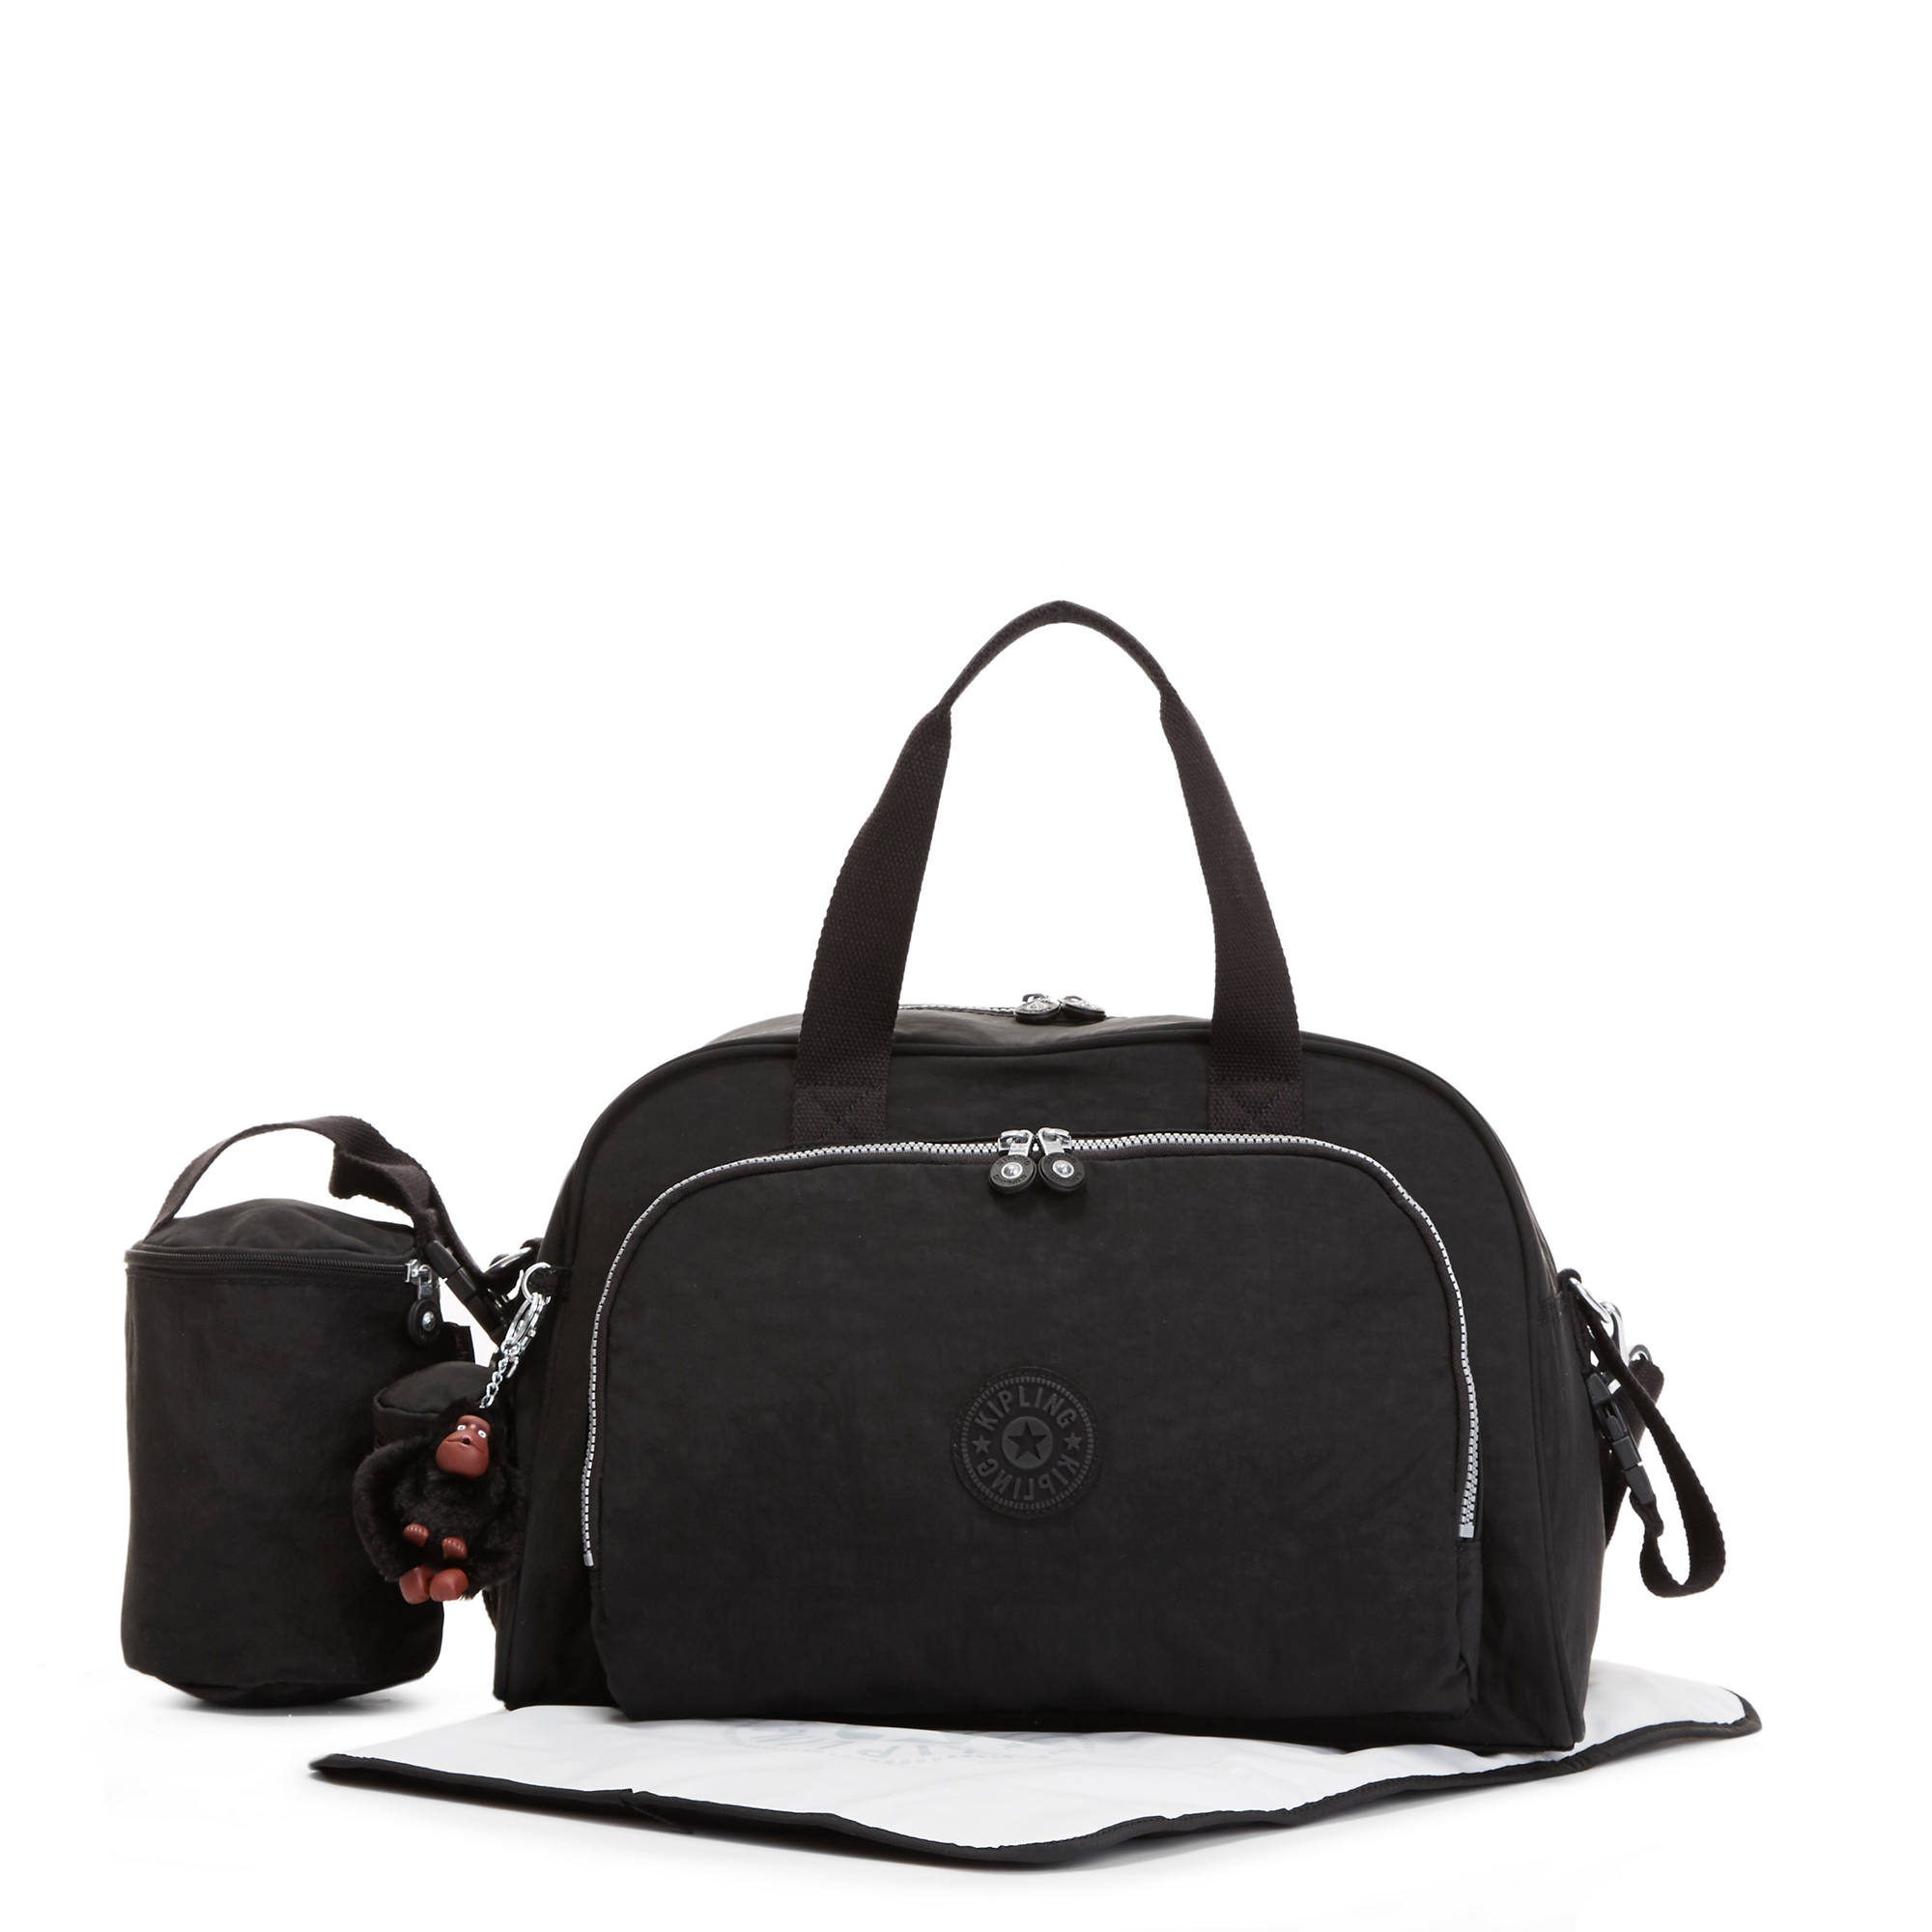 Camama Diaper Bag Black Large